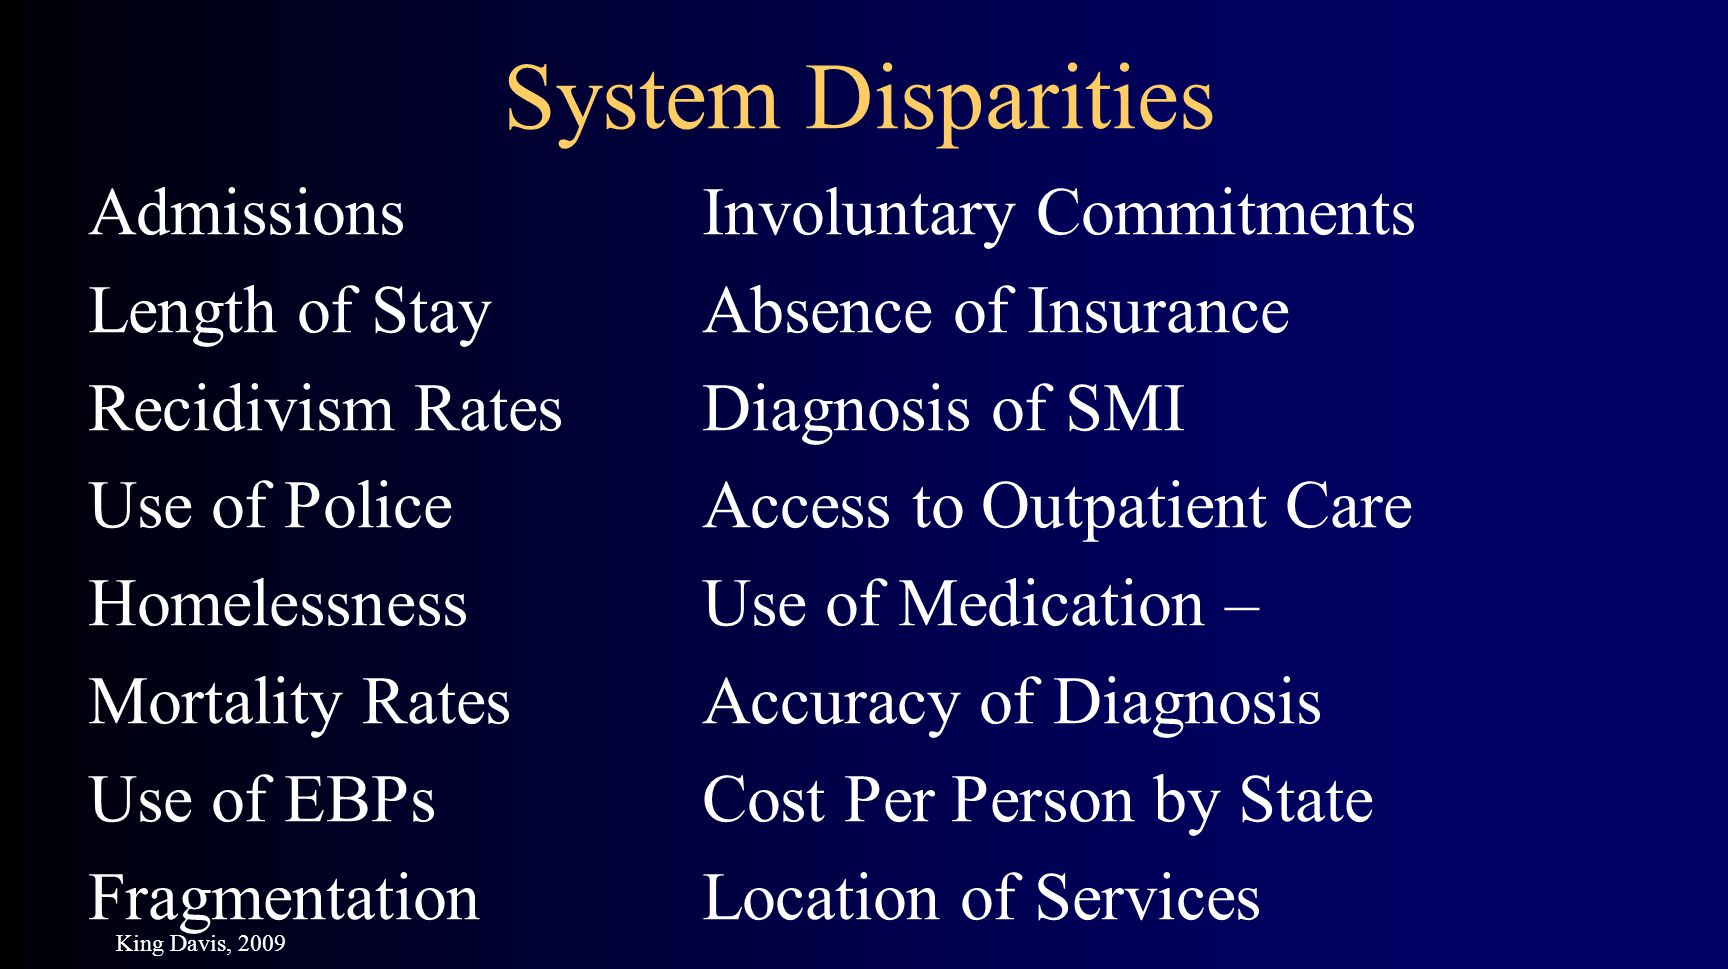 AdmissionsInvoluntary Commitments Length of StayAbsence of Insurance Recidivism RatesDiagnosis of SMI Use of PoliceAccess to Outpatient Care HomelessnessUse of Medication – Mortality RatesAccuracy of Diagnosis Use of EBPsCost Per Person by State FragmentationLocation of Services System Disparities King Davis, 2009